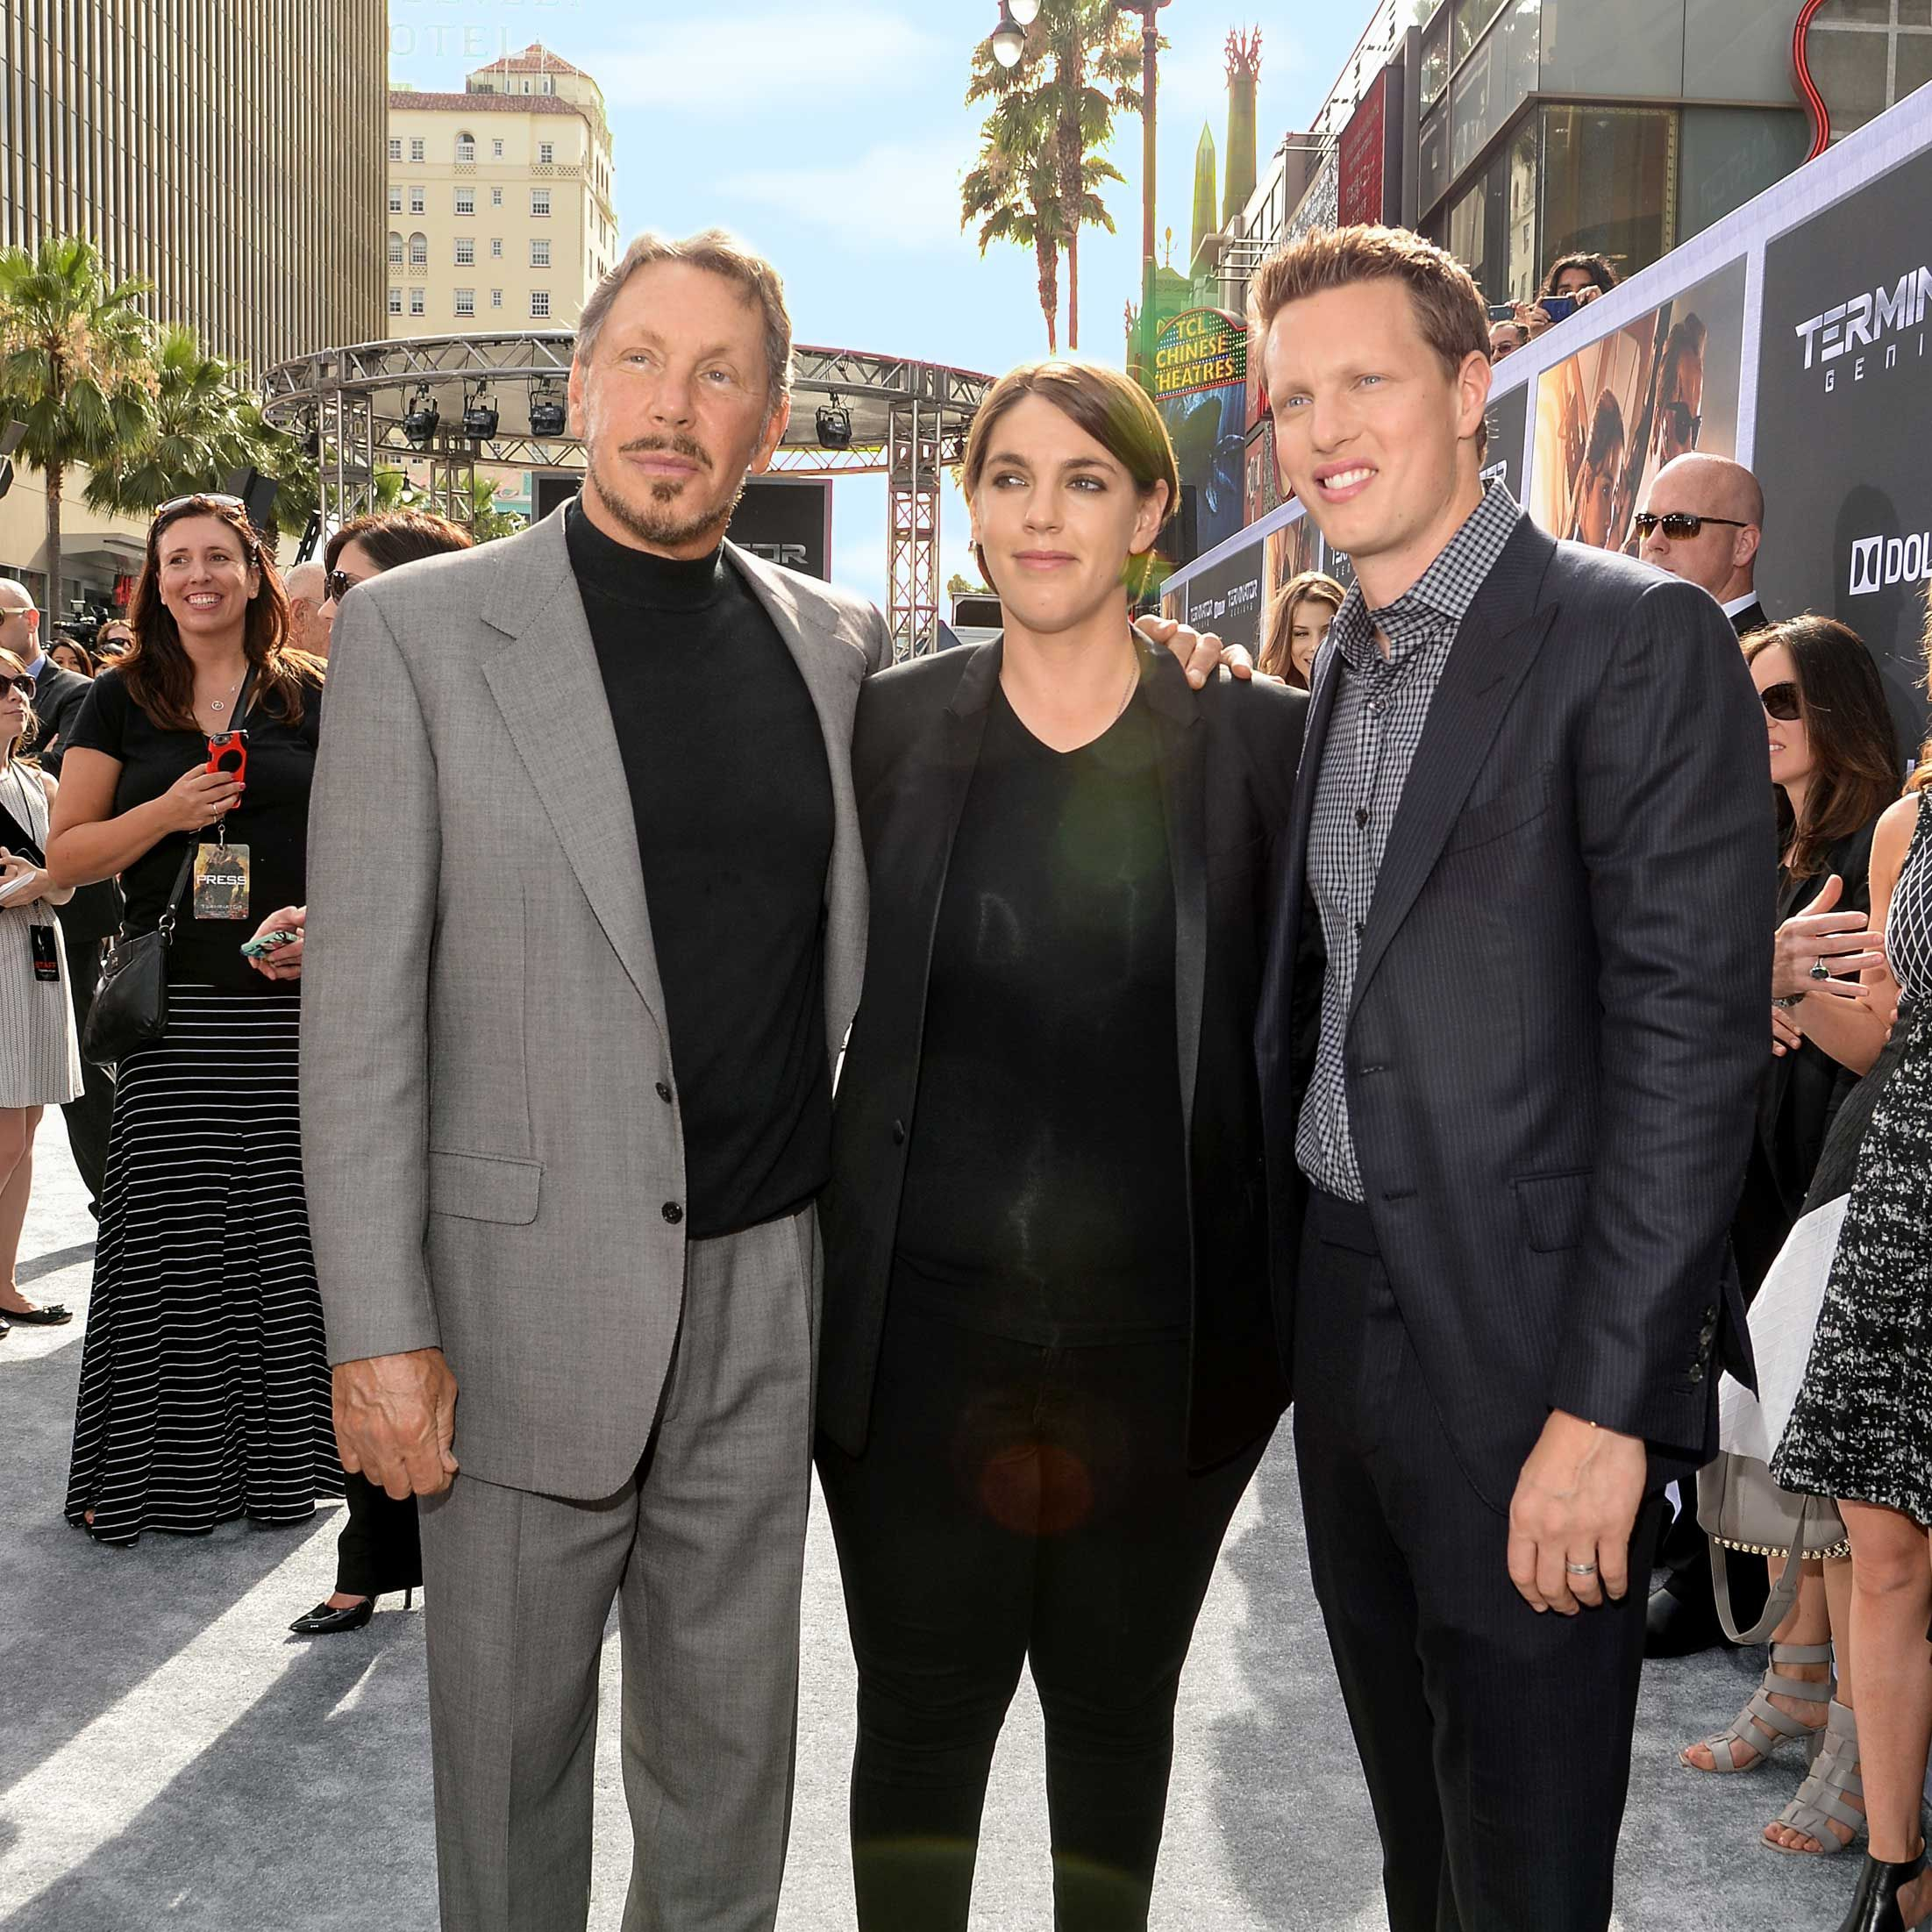 "<p>Between mega-producers Megan and David, the siblings nearly have a monopoly on Hollywood blockbusters. Dad is Oracle founder Larry.&nbsp&#x3B;</p><p><strong data-redactor-tag=""strong"" data-verified=""redactor"">Bragging rights:</strong> Megan spent $40 million on five West Hollywood buildings to house her empire.</p>"